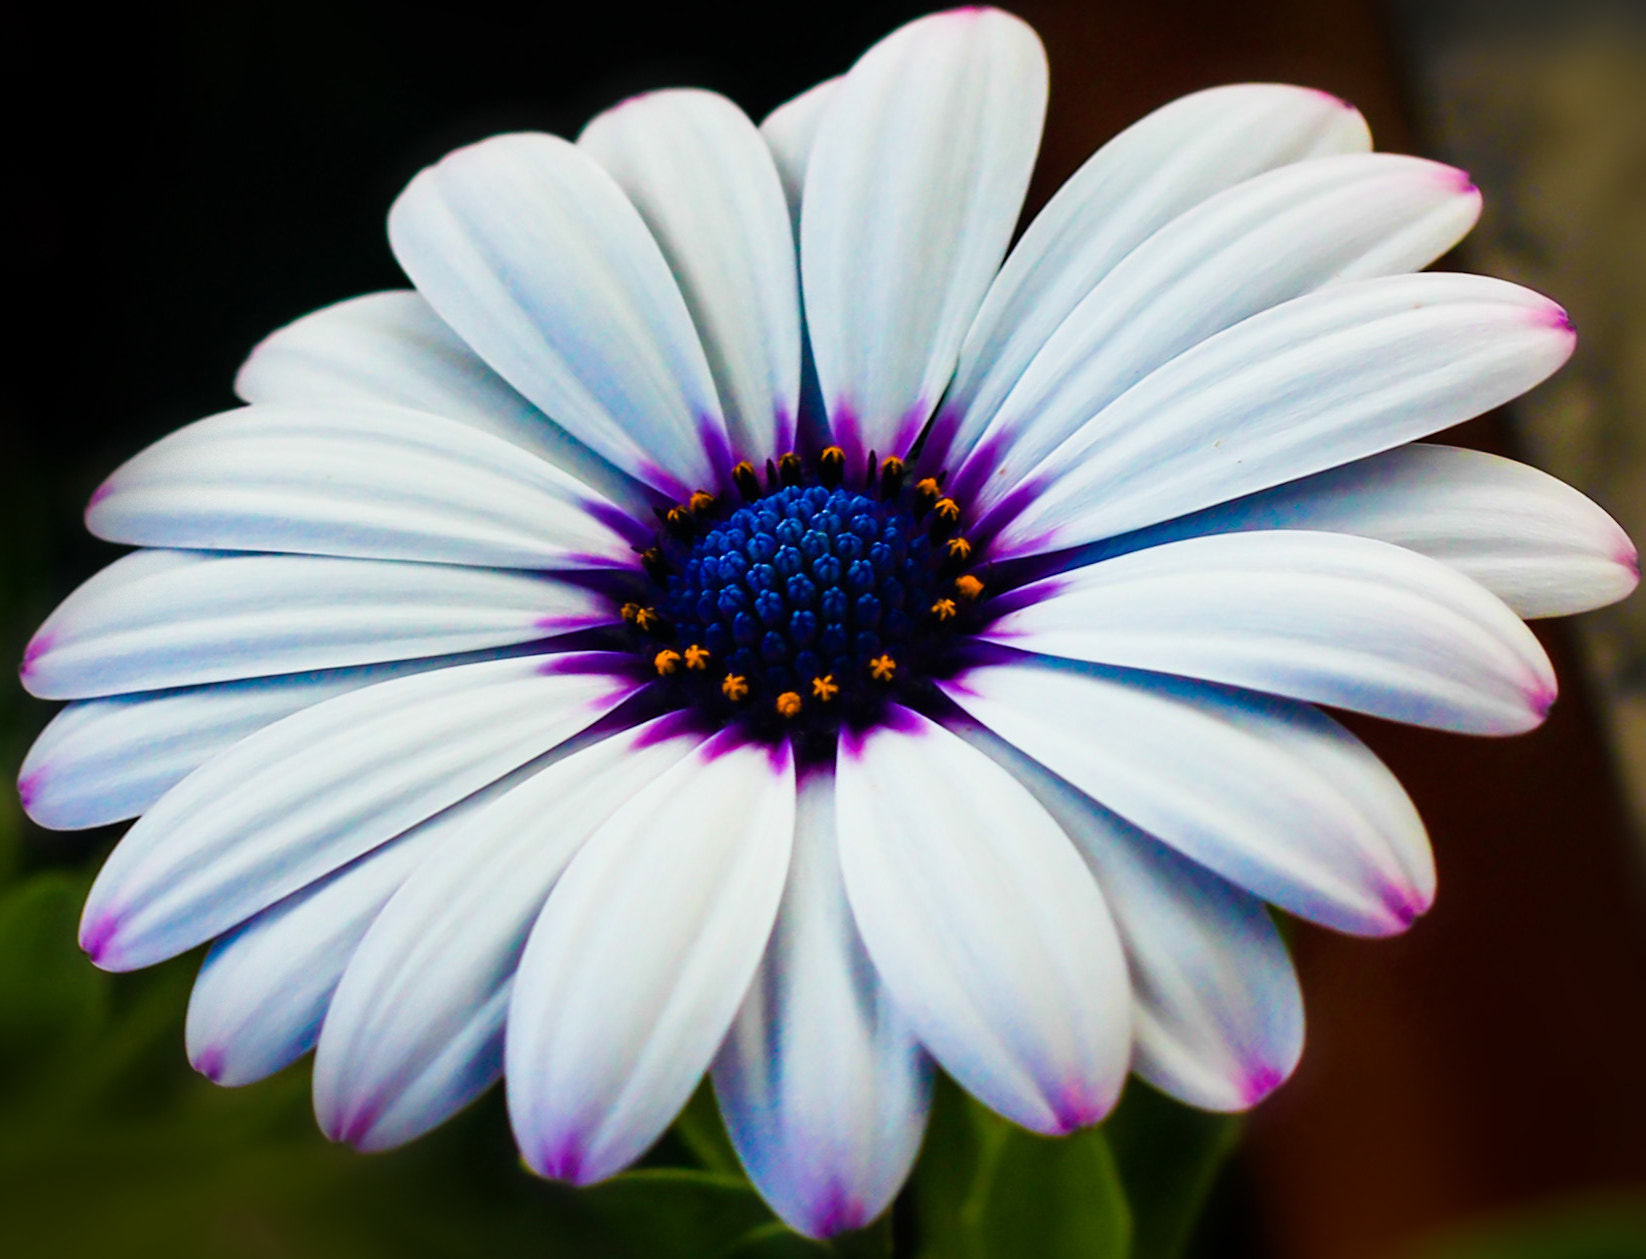 Photograph Flower by Vanesa  Barrantes on 500px